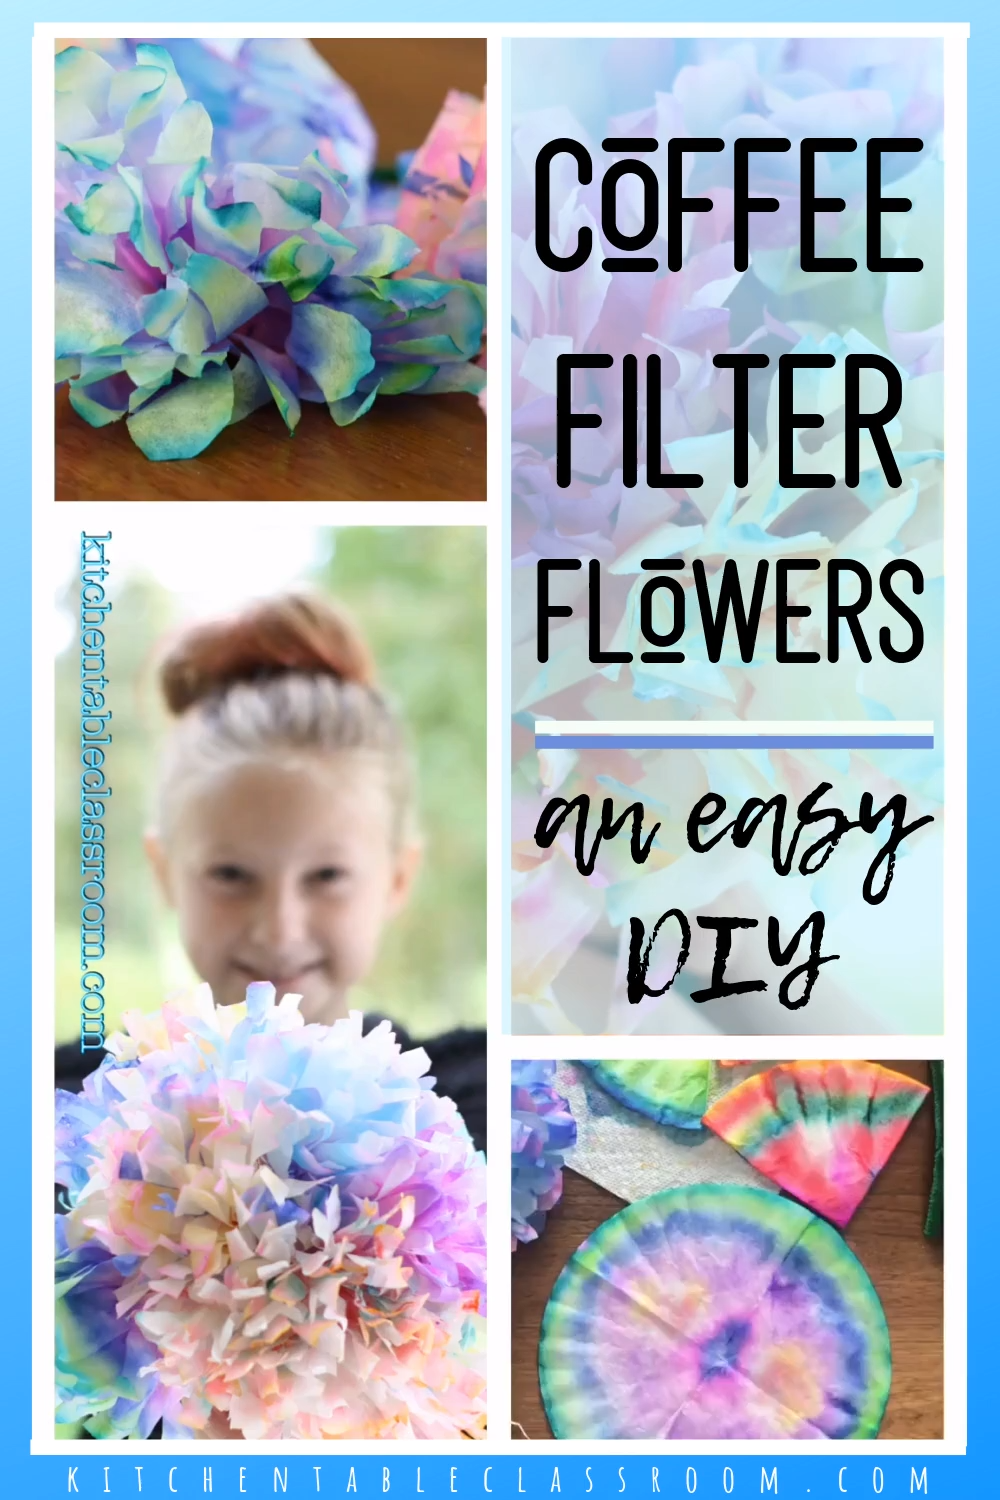 Photo of Coffee Filter Flowers